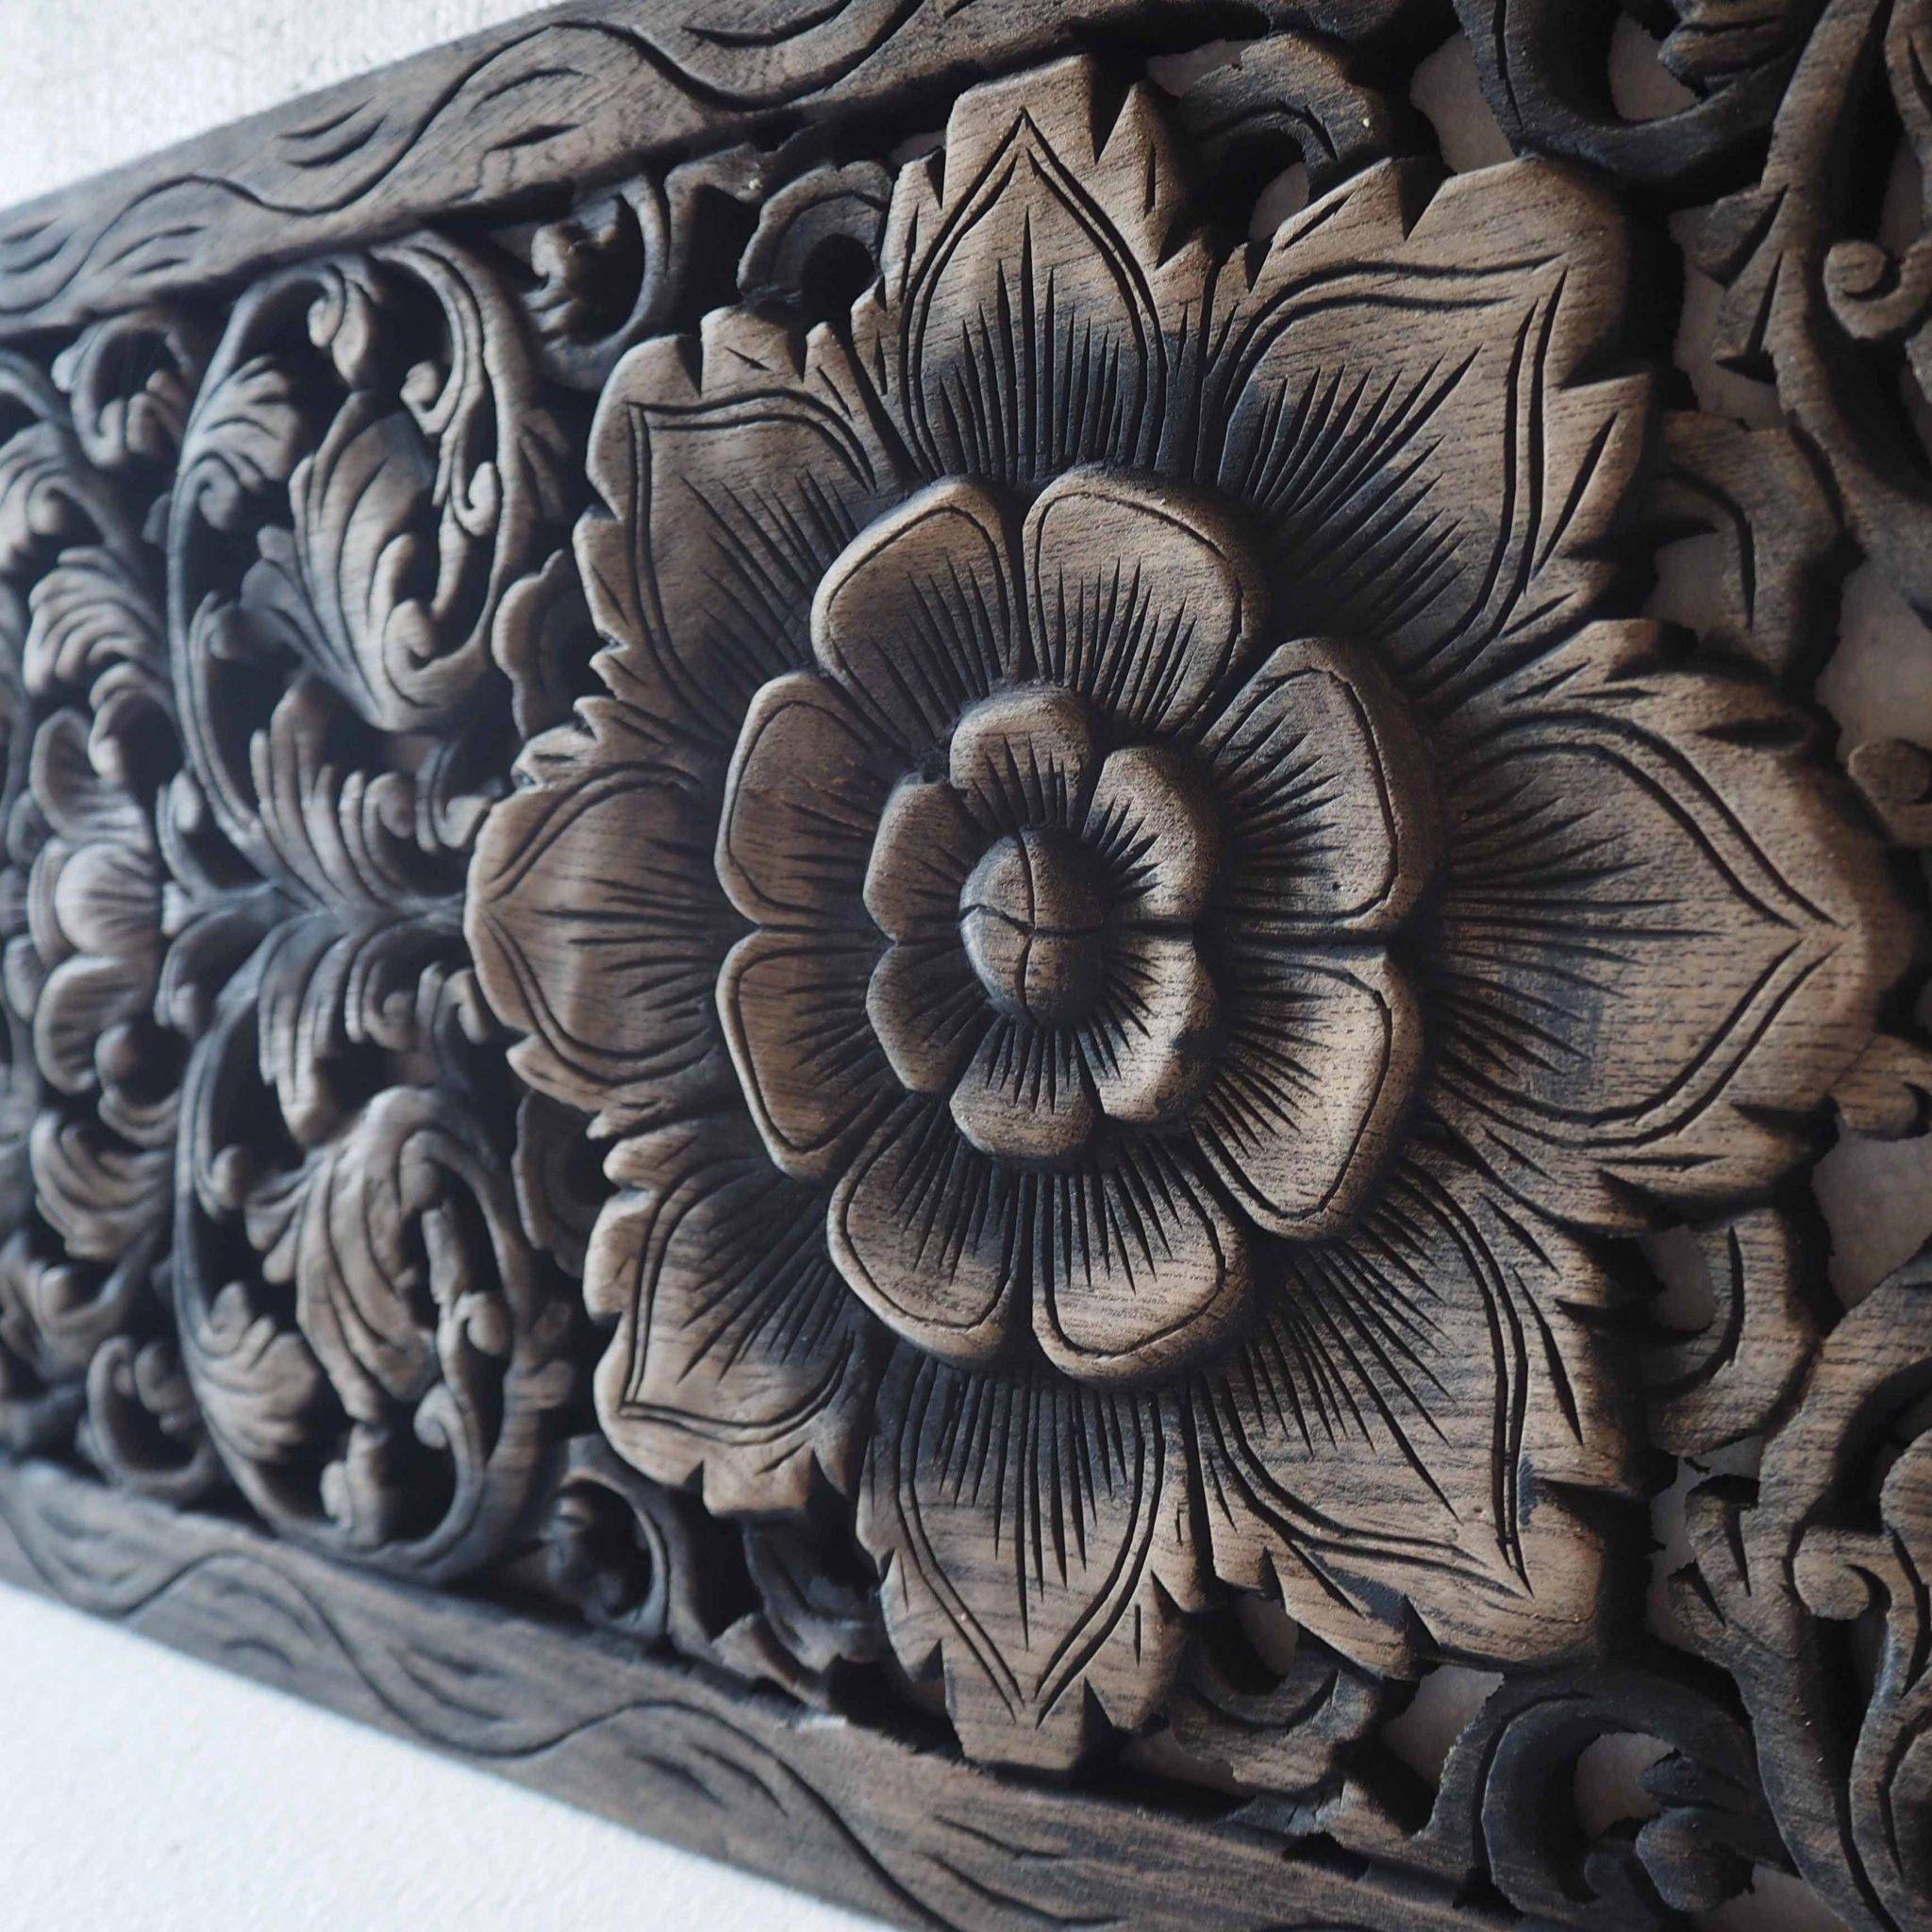 Thai Lotus Wood Carving Wall Art Panel – Siam Sawadee Within Newest Wood Carved Wall Art Panels (View 9 of 25)